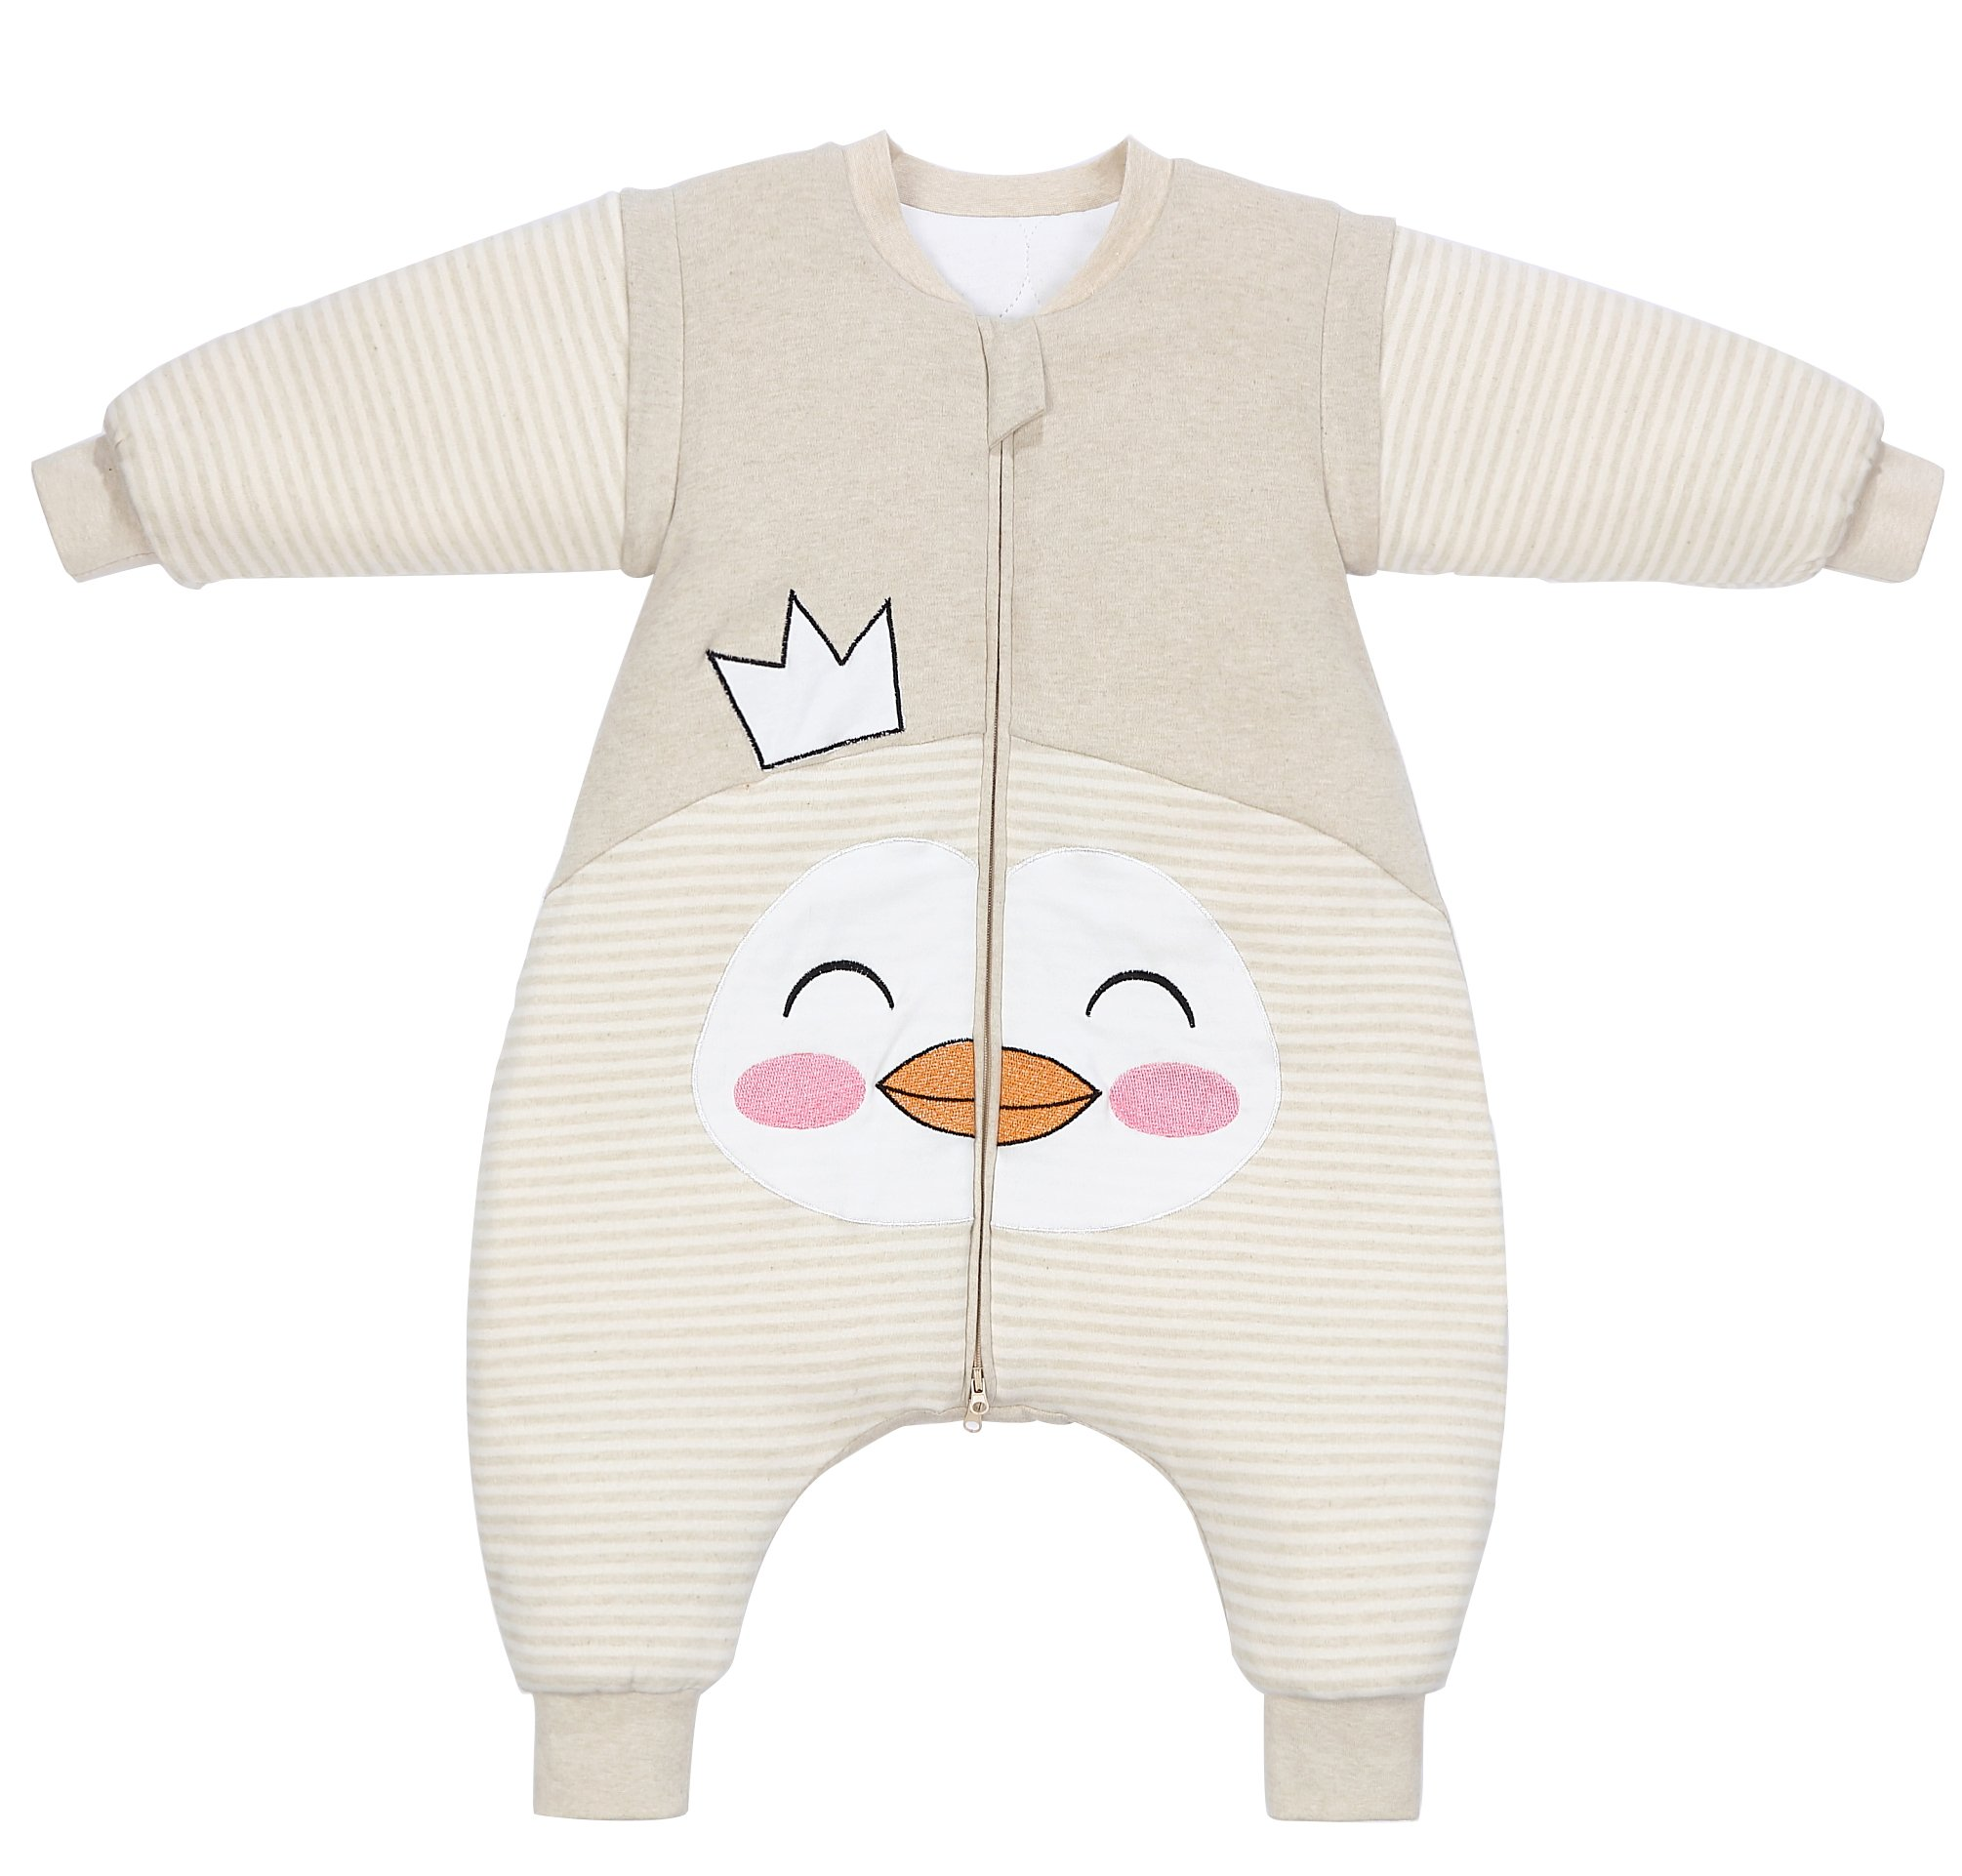 PEACE MONKEY Toddler Sleep Sack Cotton Detachable Sleeve Wearable Blanket Winter Baby Pajamas (L, Crown) by PEACE MONKEY